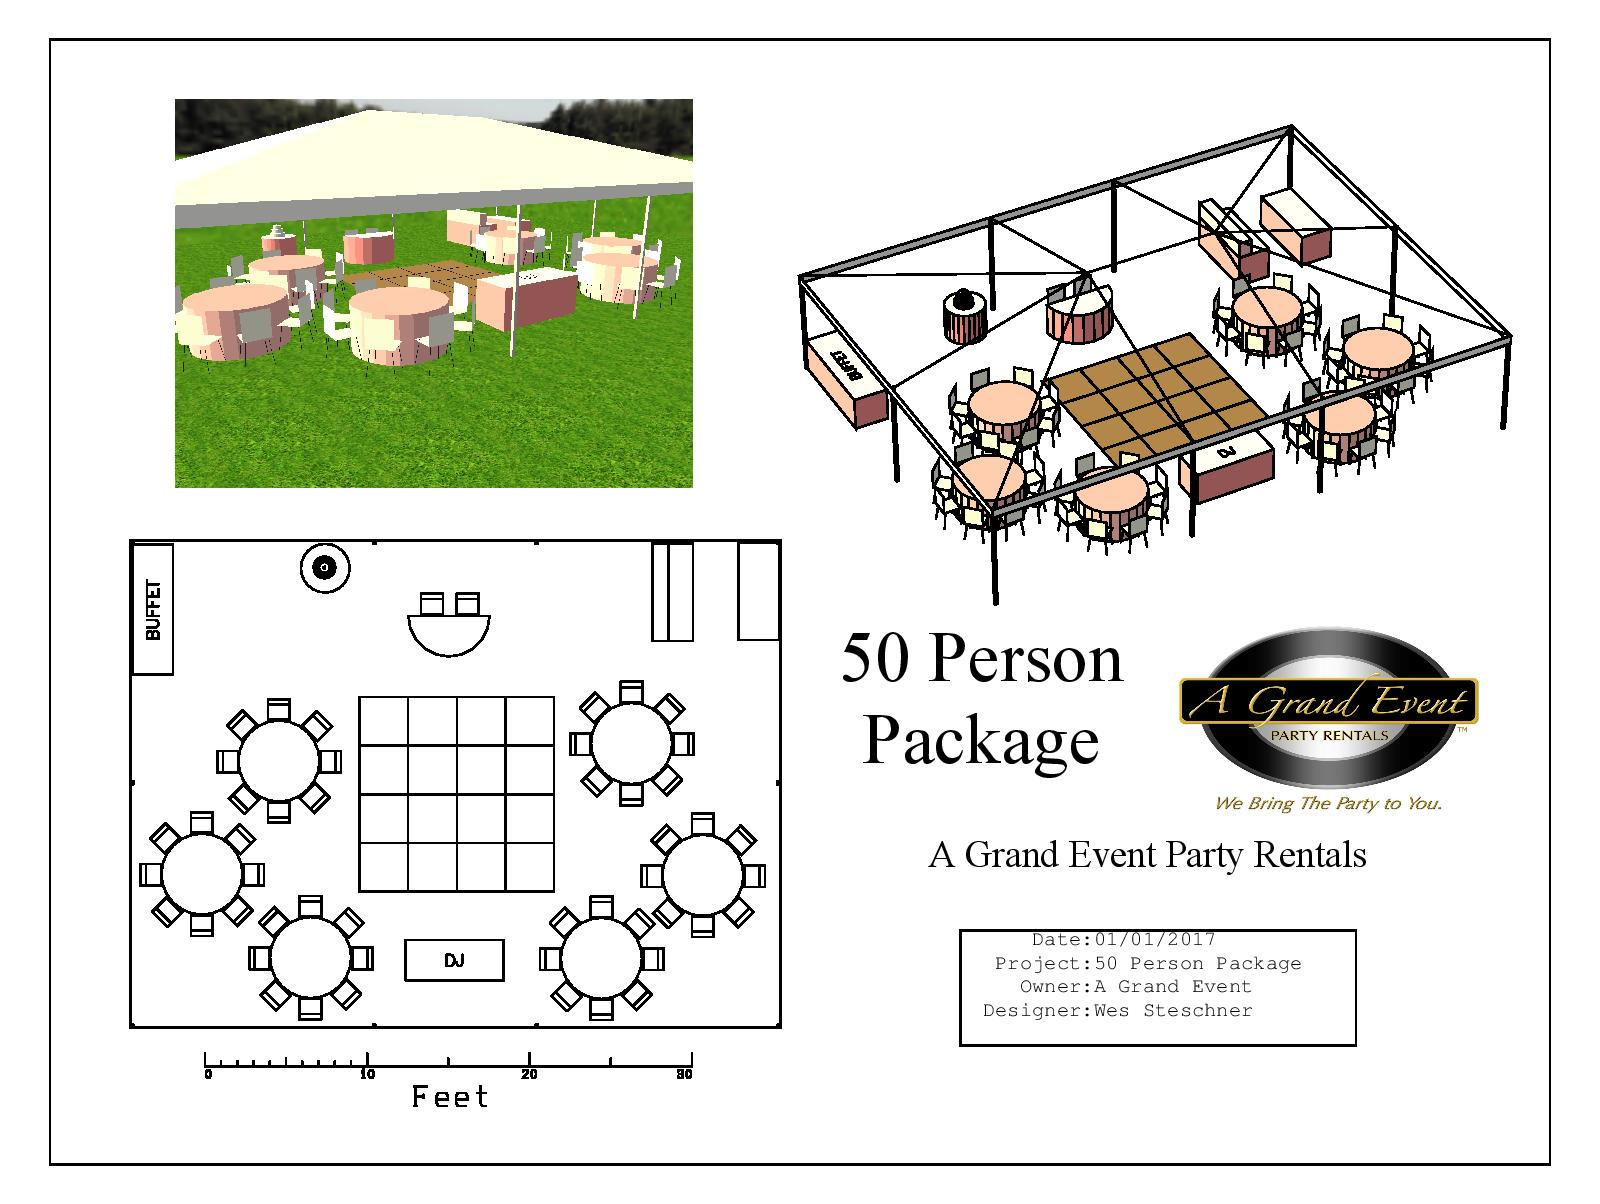 hight resolution of tent capacity depends on how many people seated per table tent can fit 50 with 8 people per 5 round table and up to 62 with 10 per 5 round table